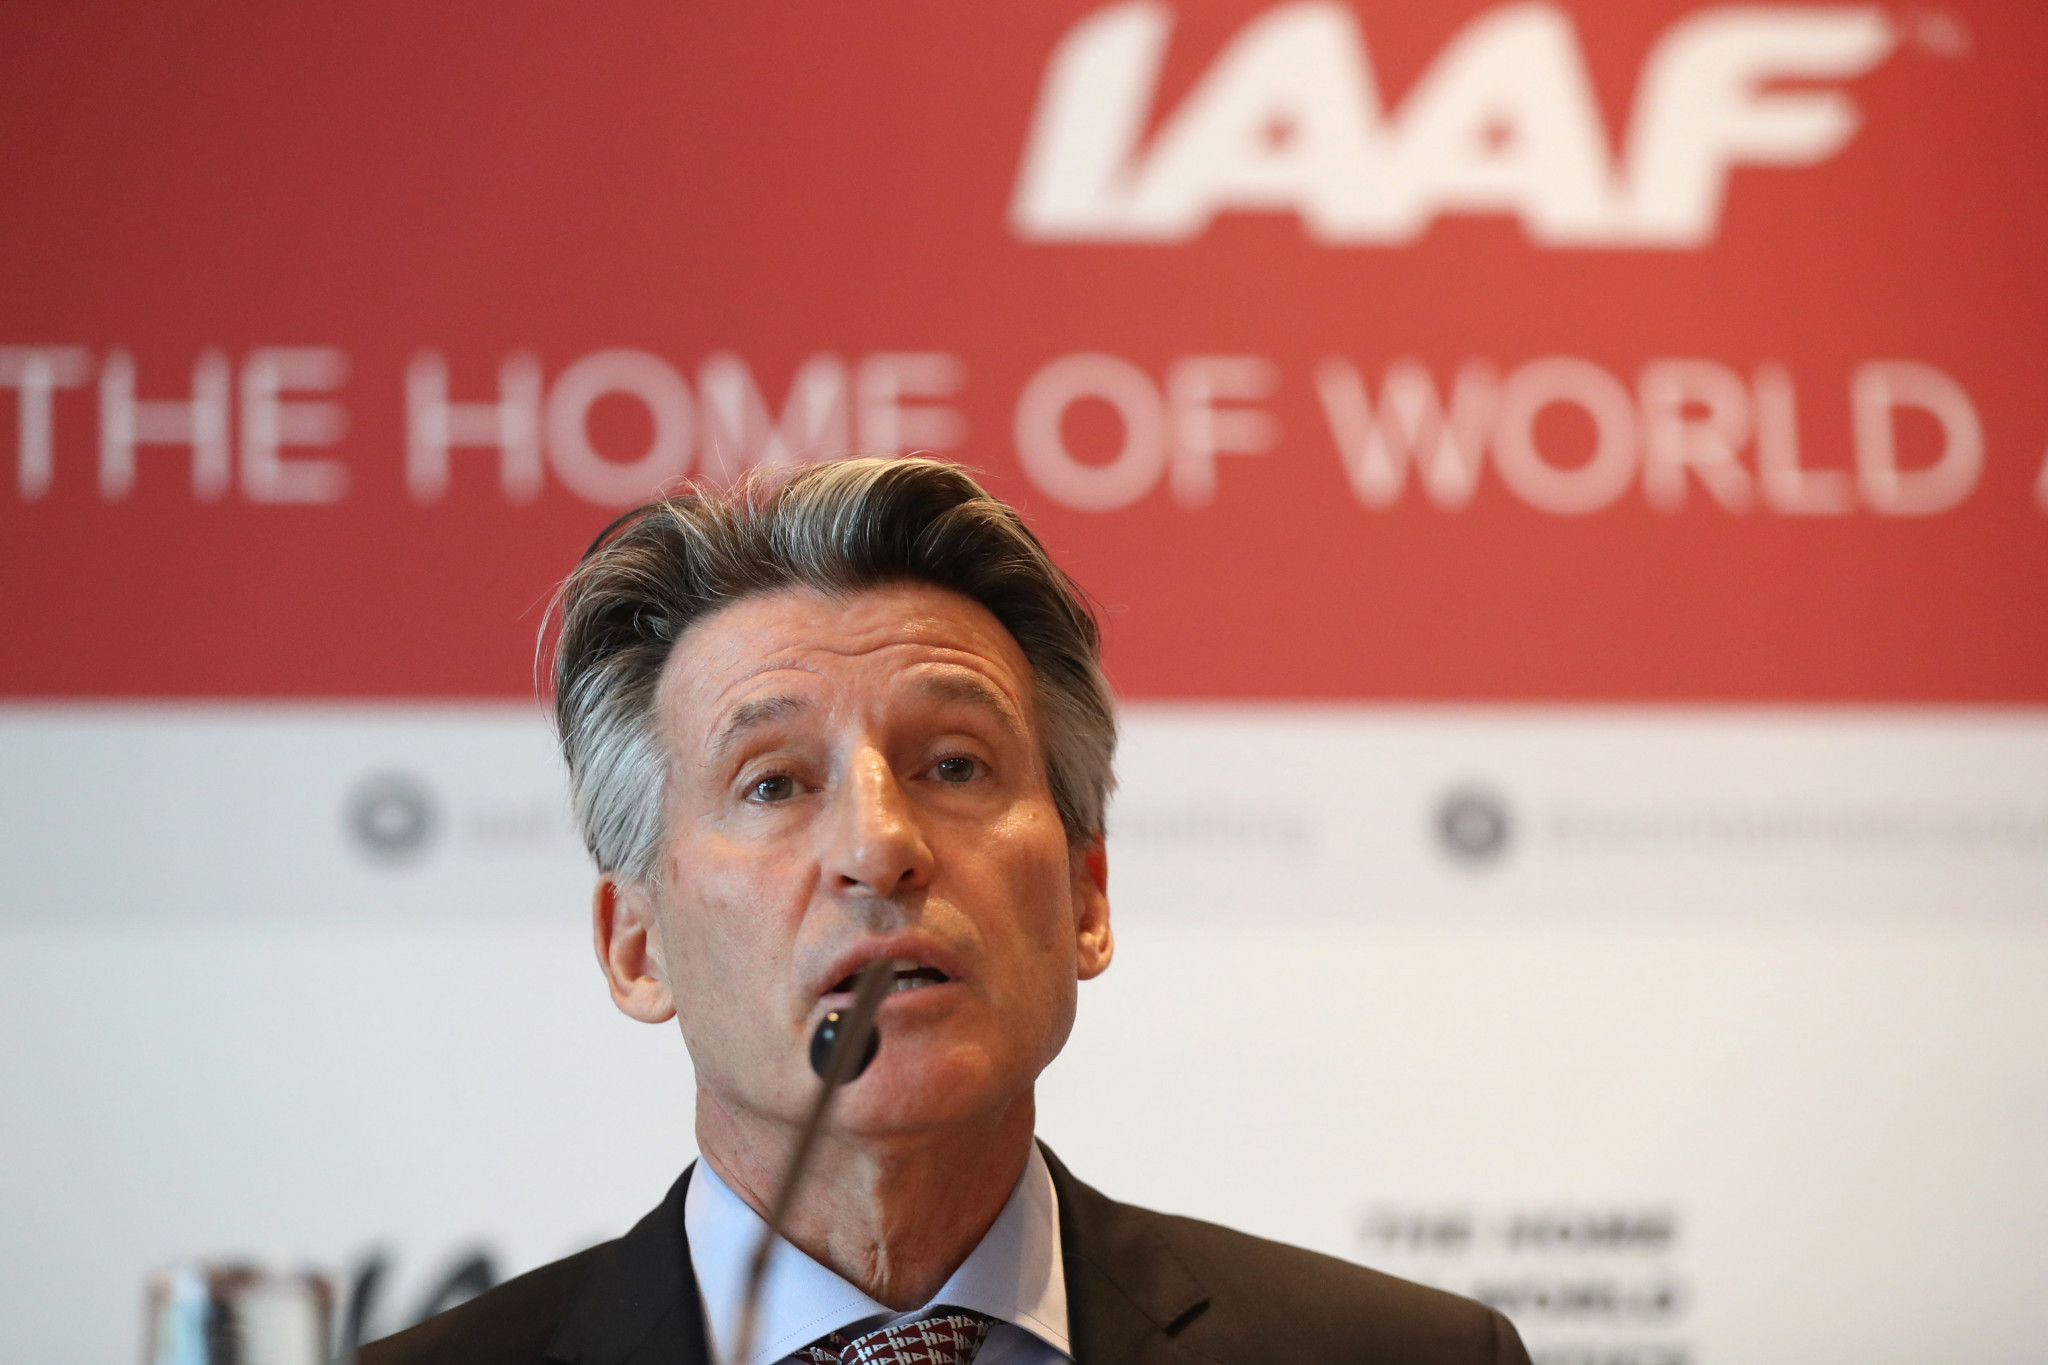 The IAAF, whose President is Sebastian Coe, issued updated guidelines for Russians looking to compete under authorised neutral athlete status last month ©Getty Images